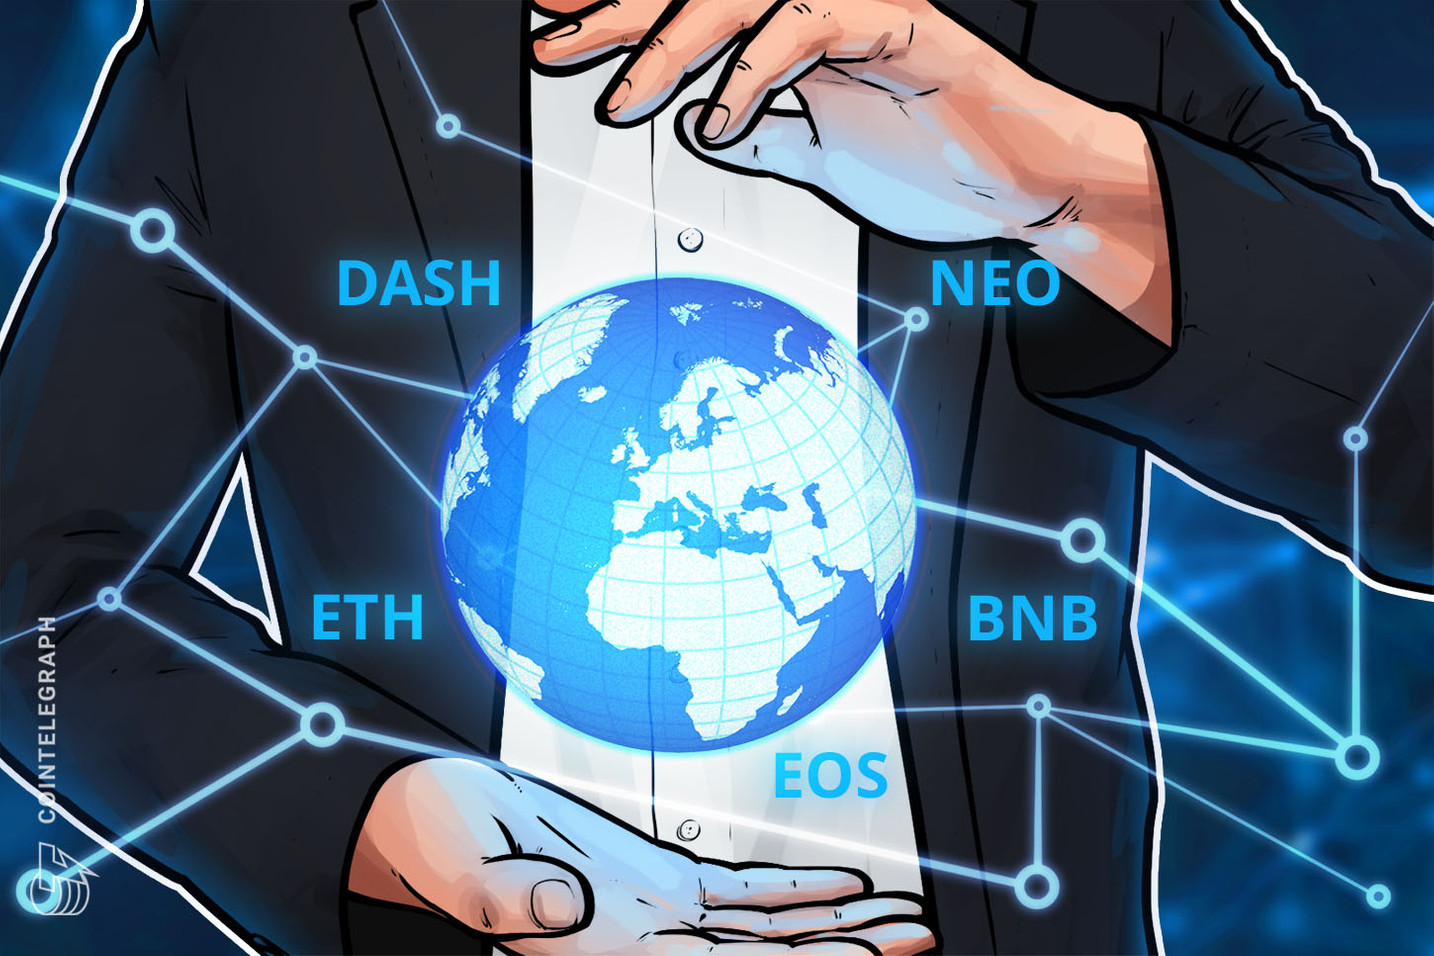 Top 5 Crypto Performers Overview: Dash, Neo, Binance Coin, EOS, Ethereum